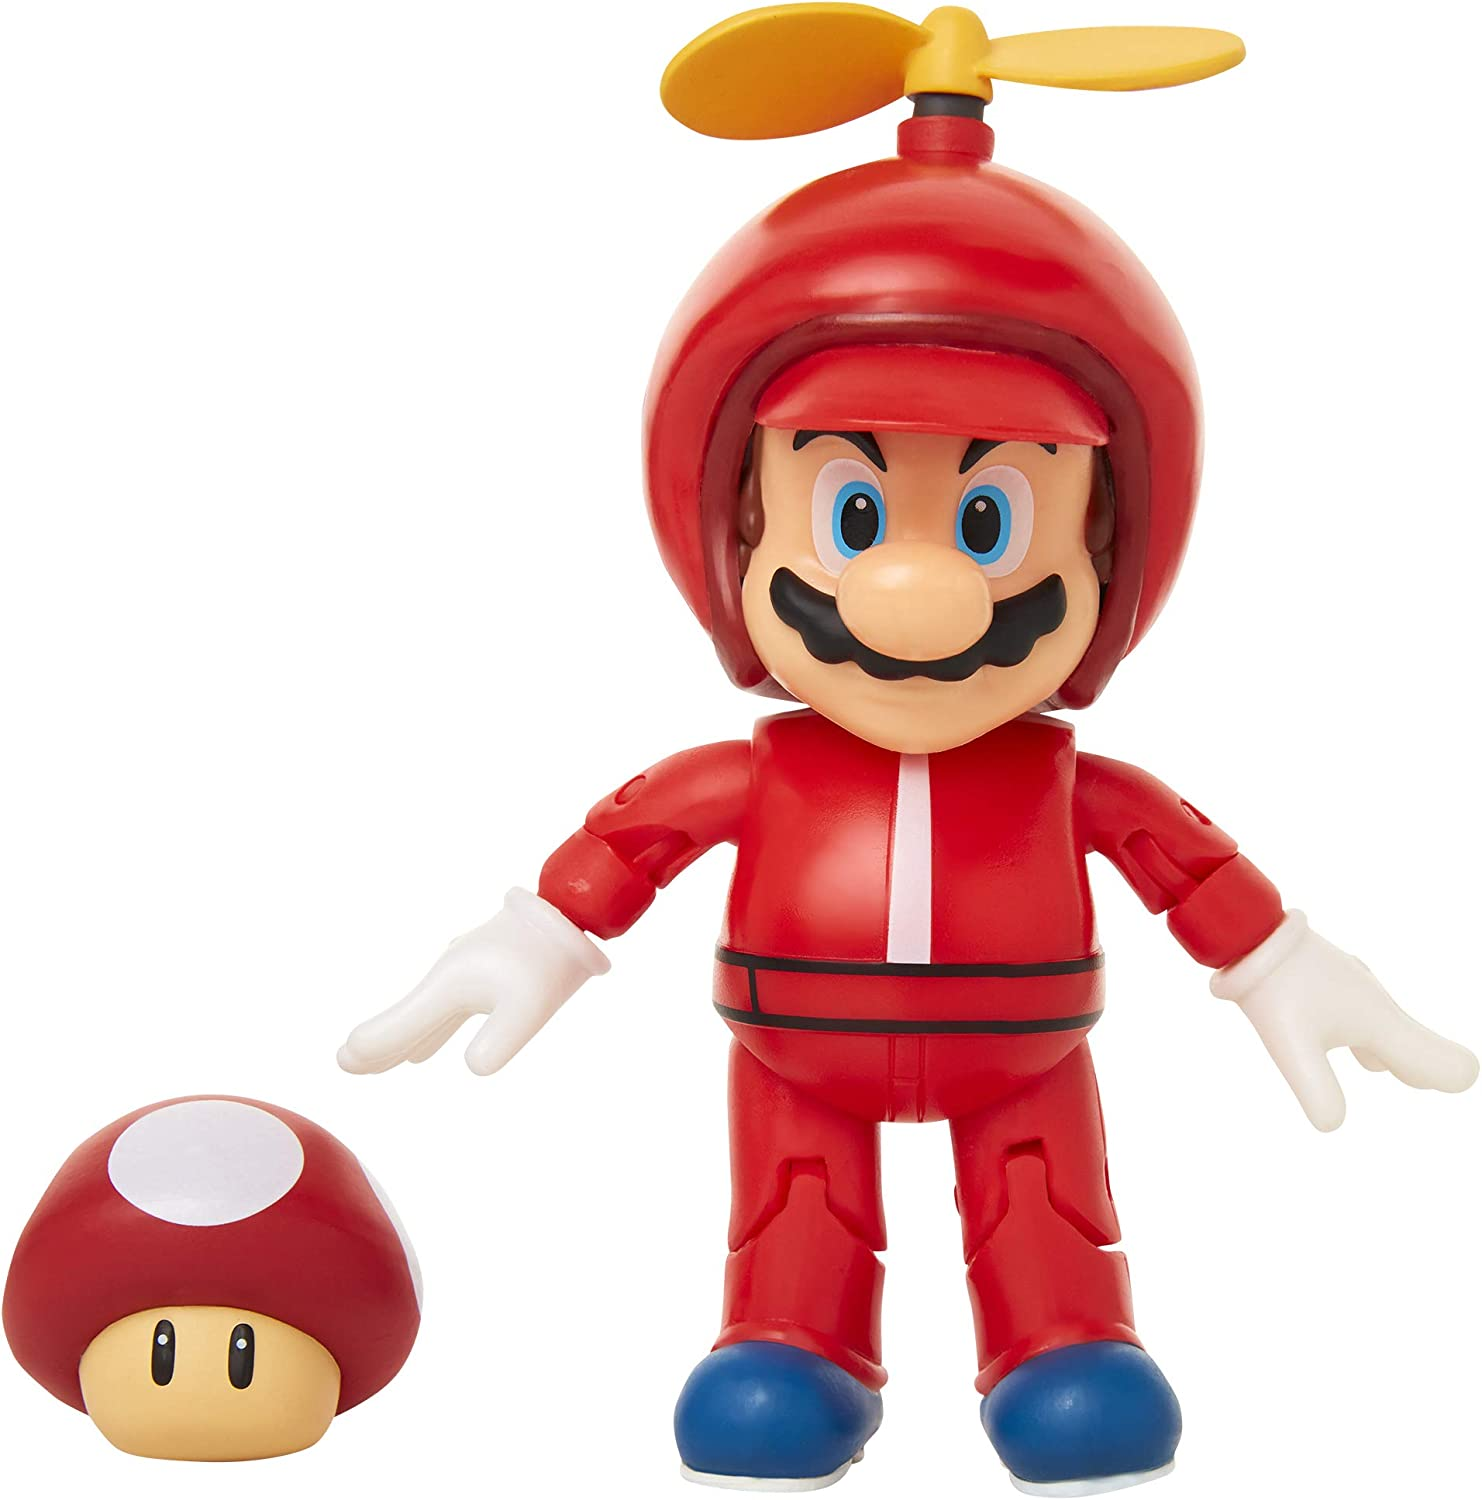 Super Mario 4 Articulated Mario Action Figure With Super Mushroom Toys Games Playsets